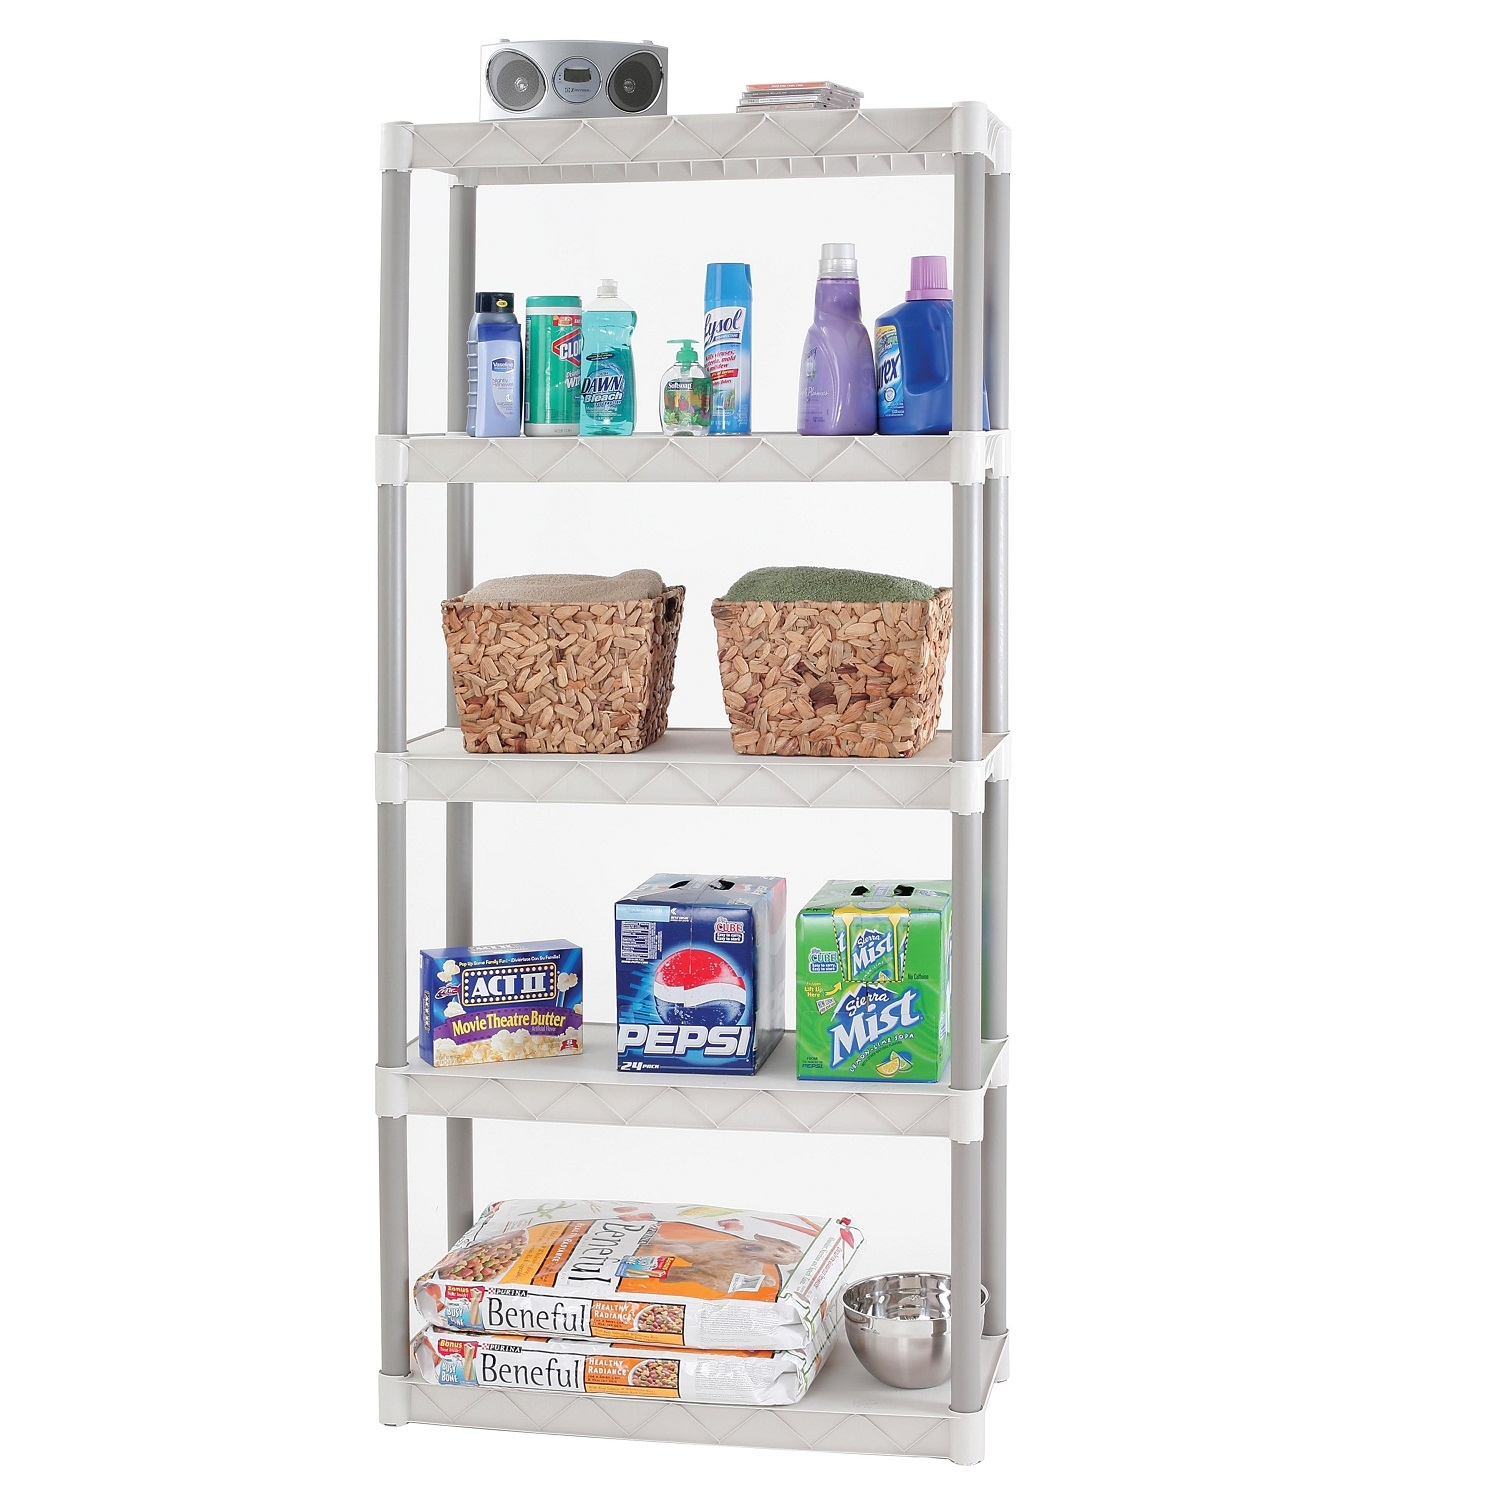 Walmart Shelving | Slim Shelving Unit | Bathroom Shelves at Walmart